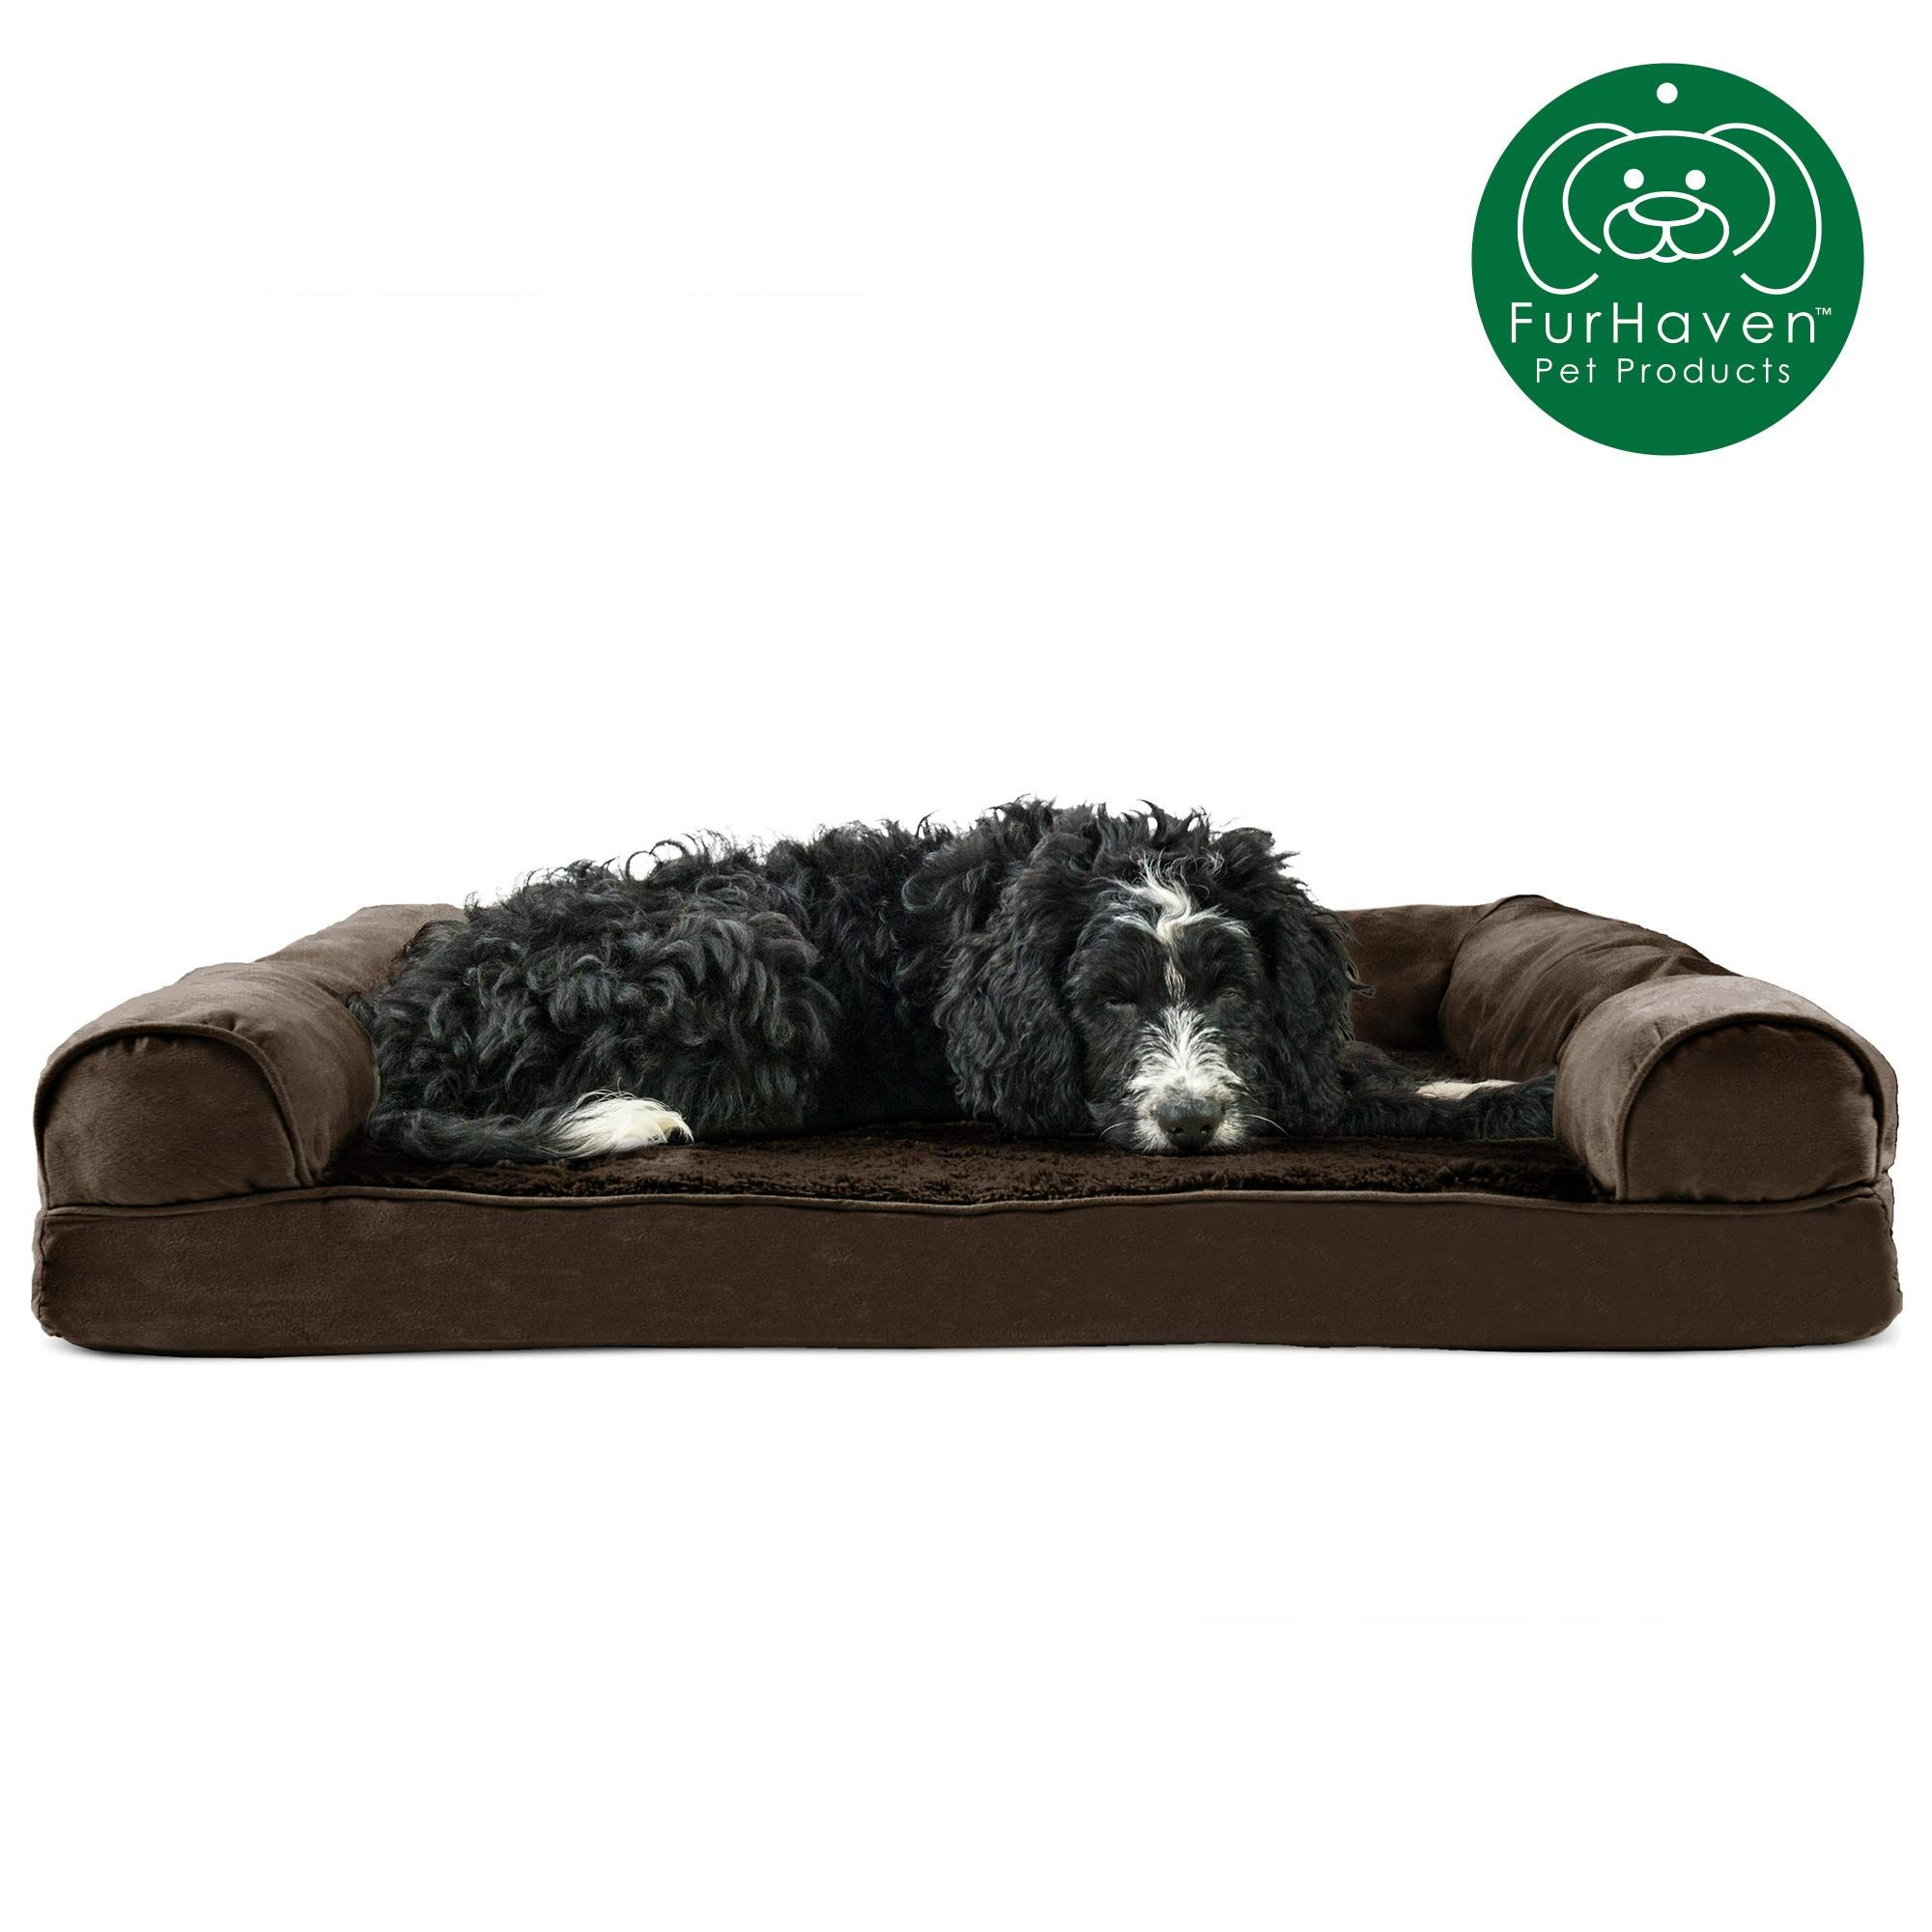 Furhaven Pet Dog Bed Orthopedic Ultra Plush Faux Fur Andamp Suede Traditional Sofa Style Living Room Couch Pet Bed W Rem Dog Sofa Bed Dog Bed Large Dog Bed